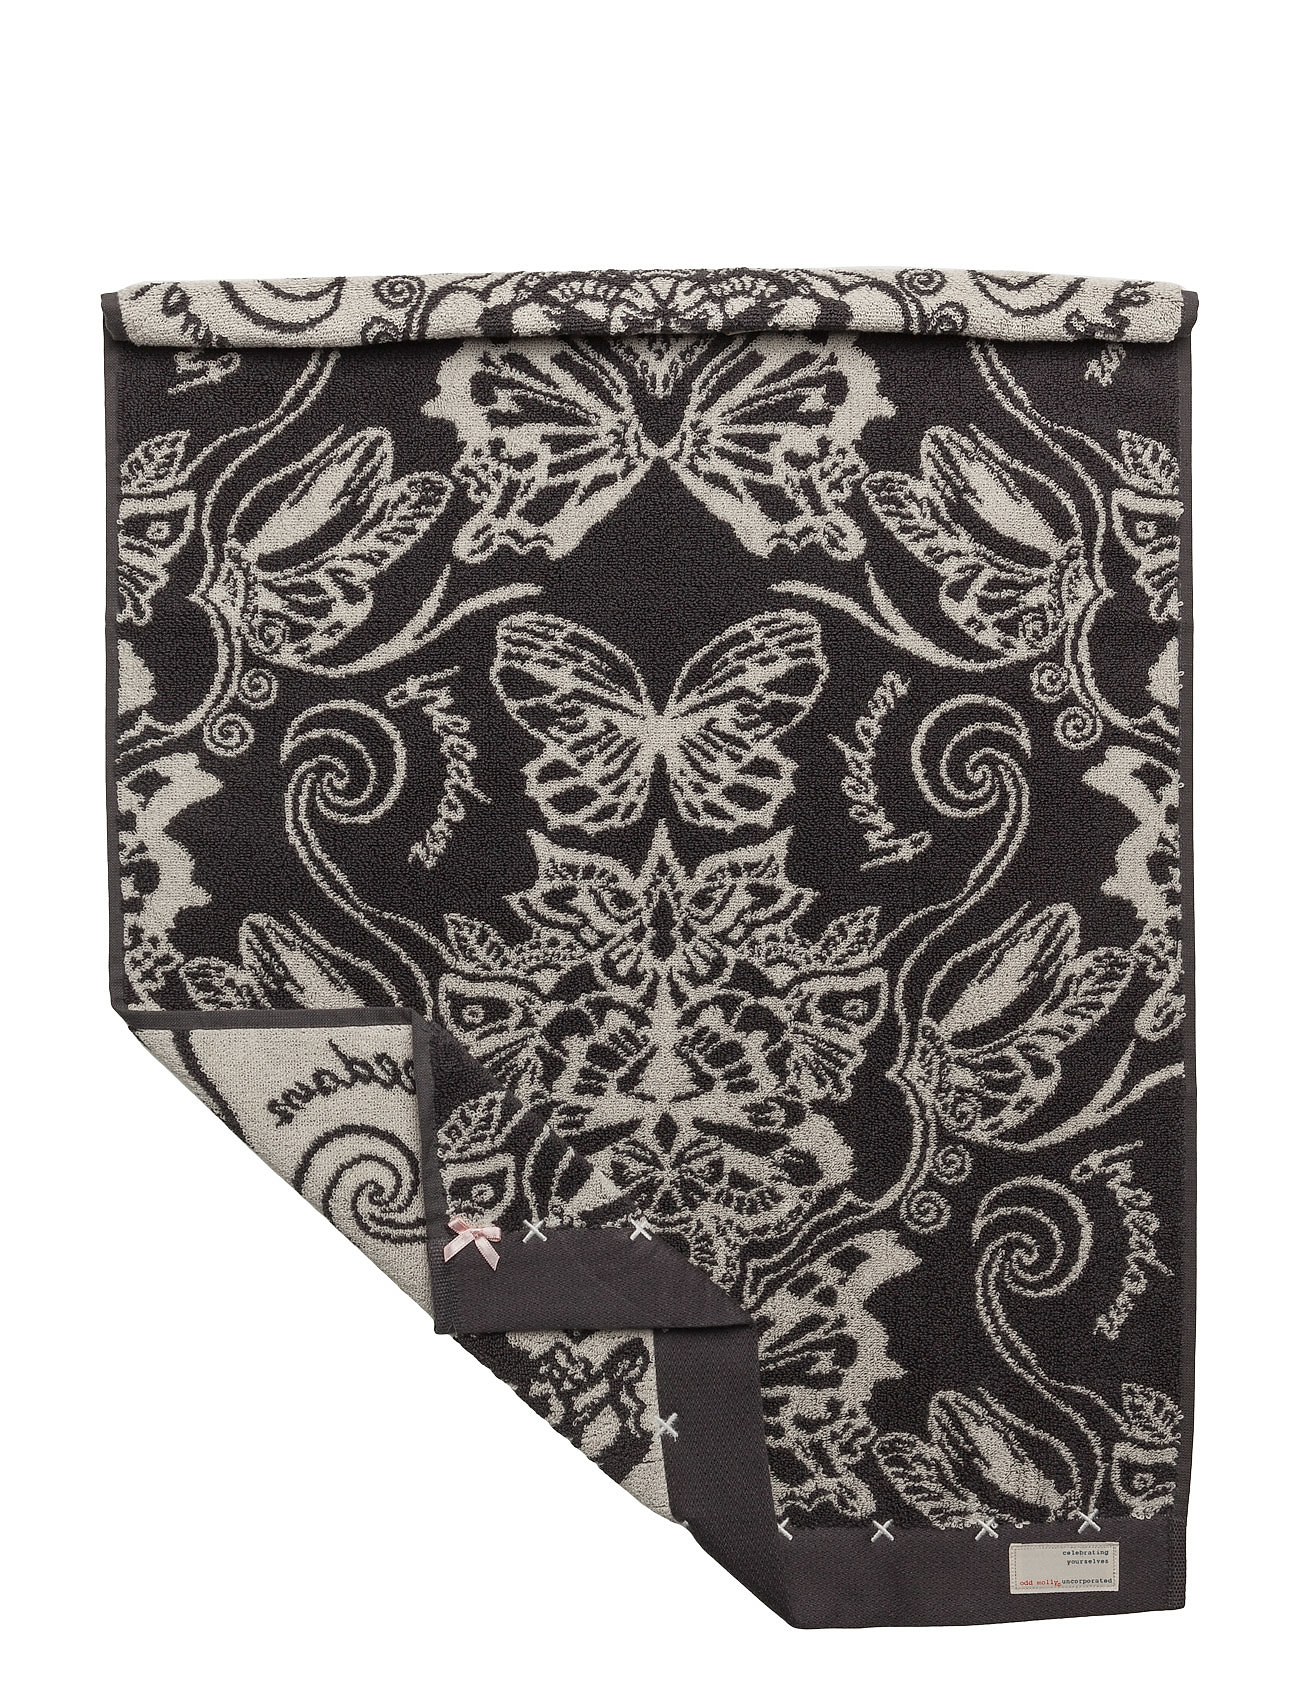 Daybreak butterfly guest towel fra odd molly home fra boozt.com dk